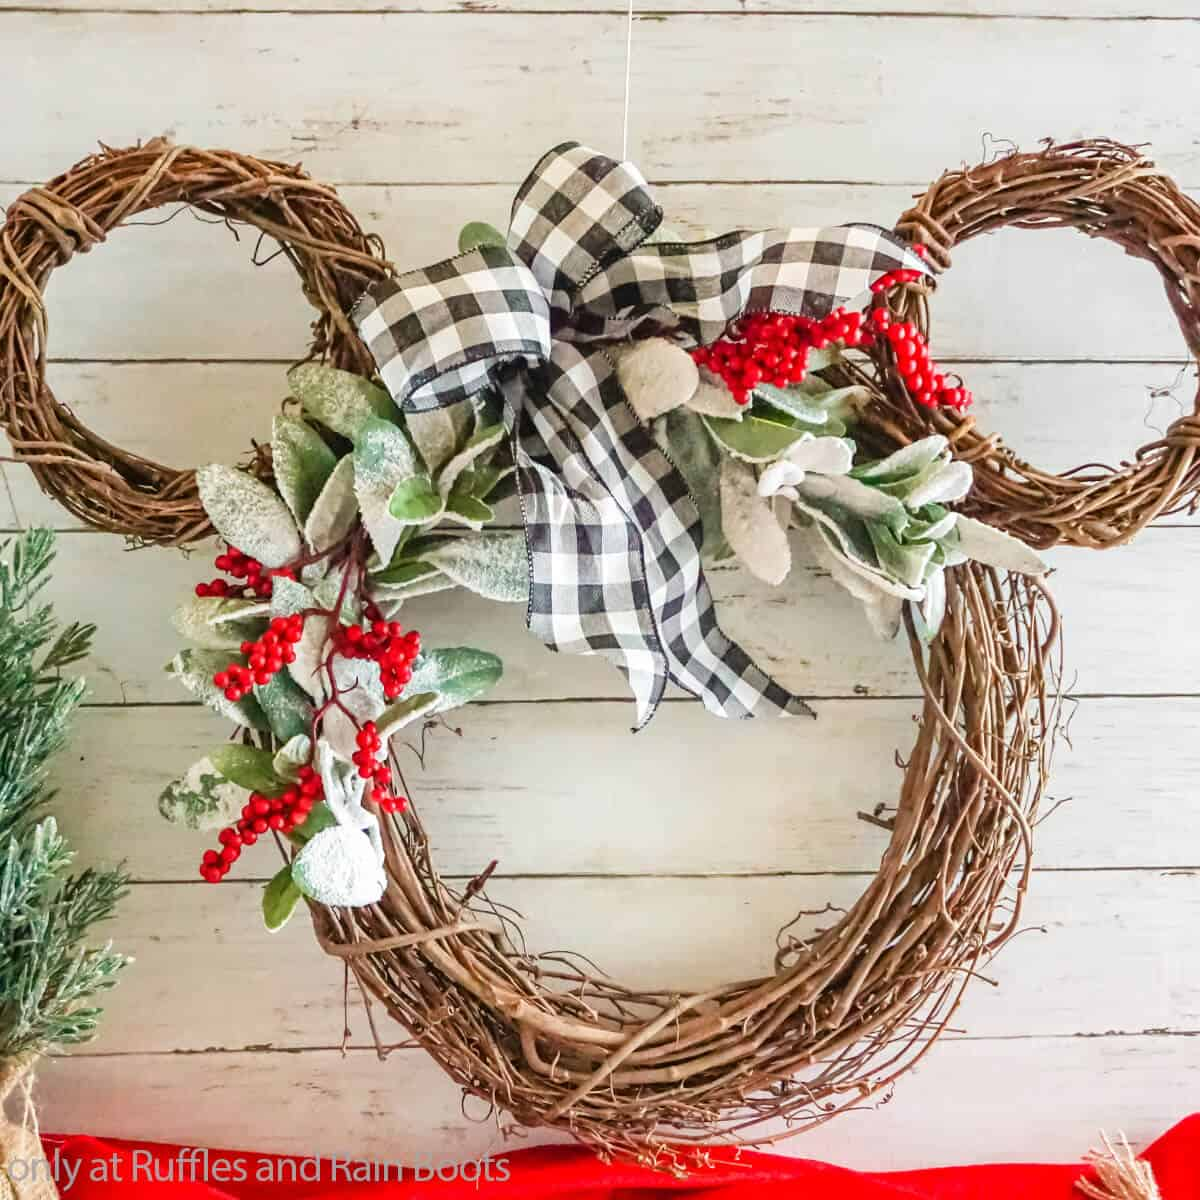 Mickey Winter Wreath from a Grapevine Wreath